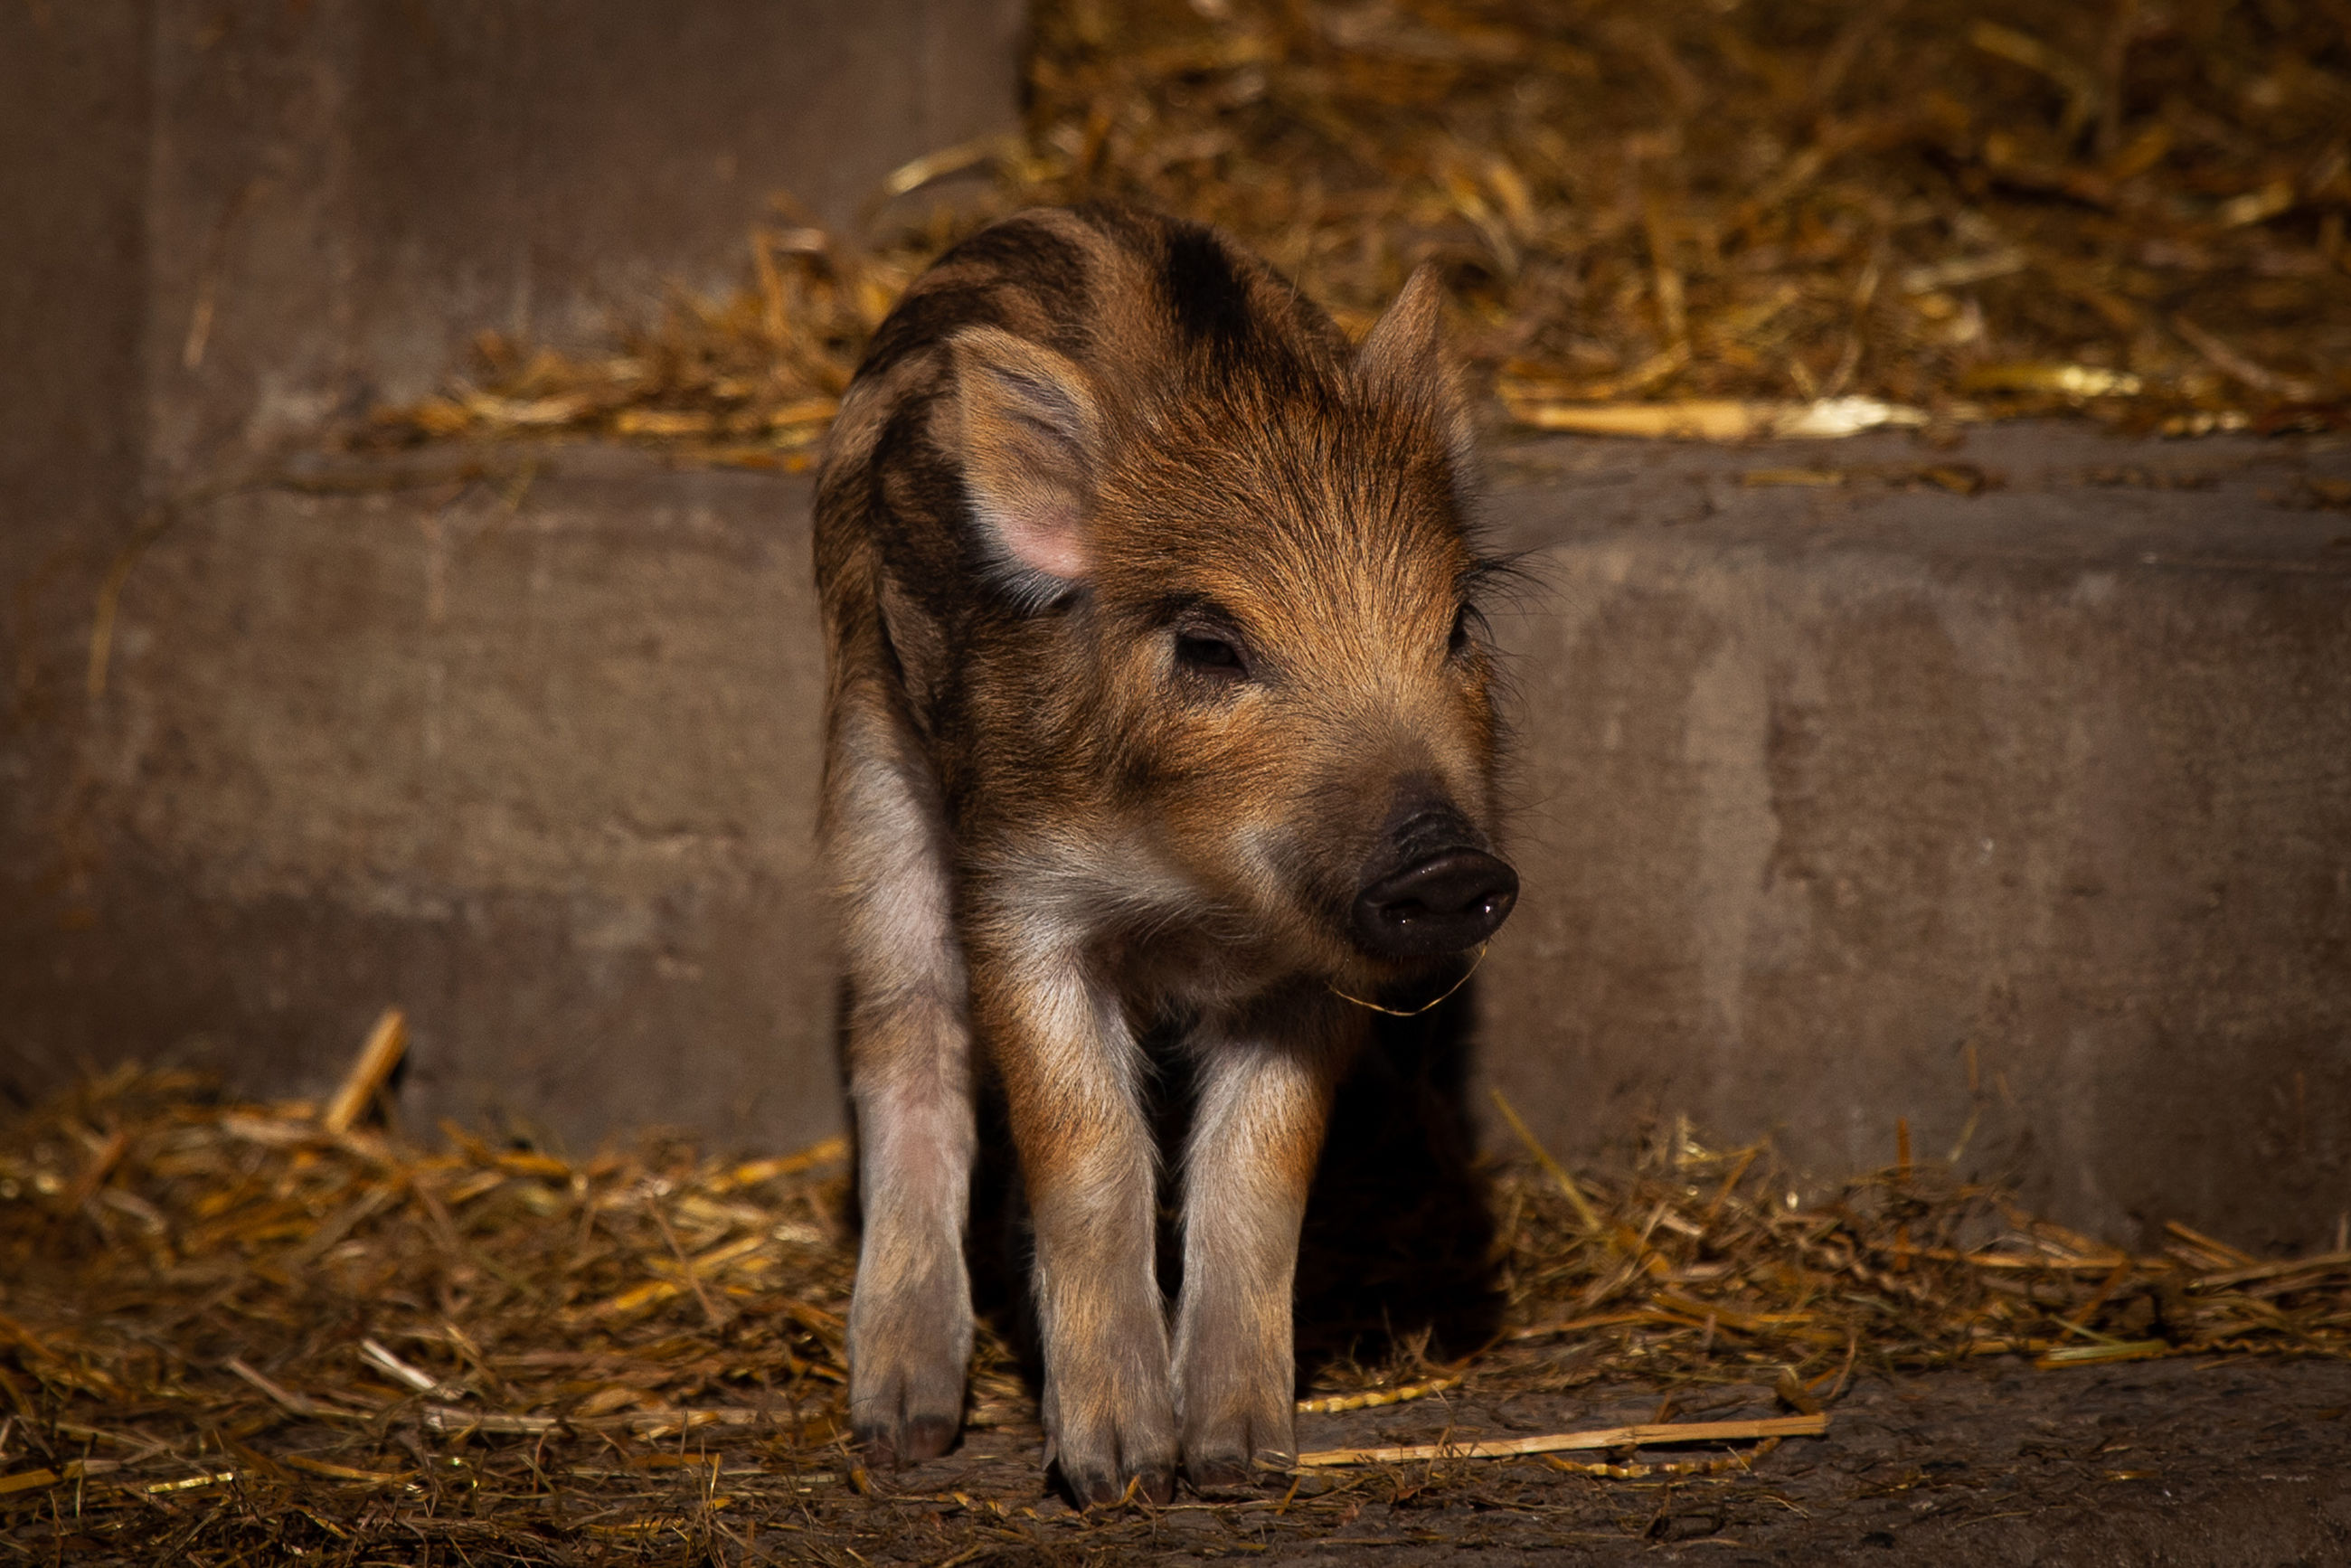 mammal, animal themes, animal, one animal, animal wildlife, no people, vertebrate, animals in the wild, young animal, pig, day, nature, domestic animals, outdoors, land, pets, brown, wild boar, field, piglet, animal head, herbivorous